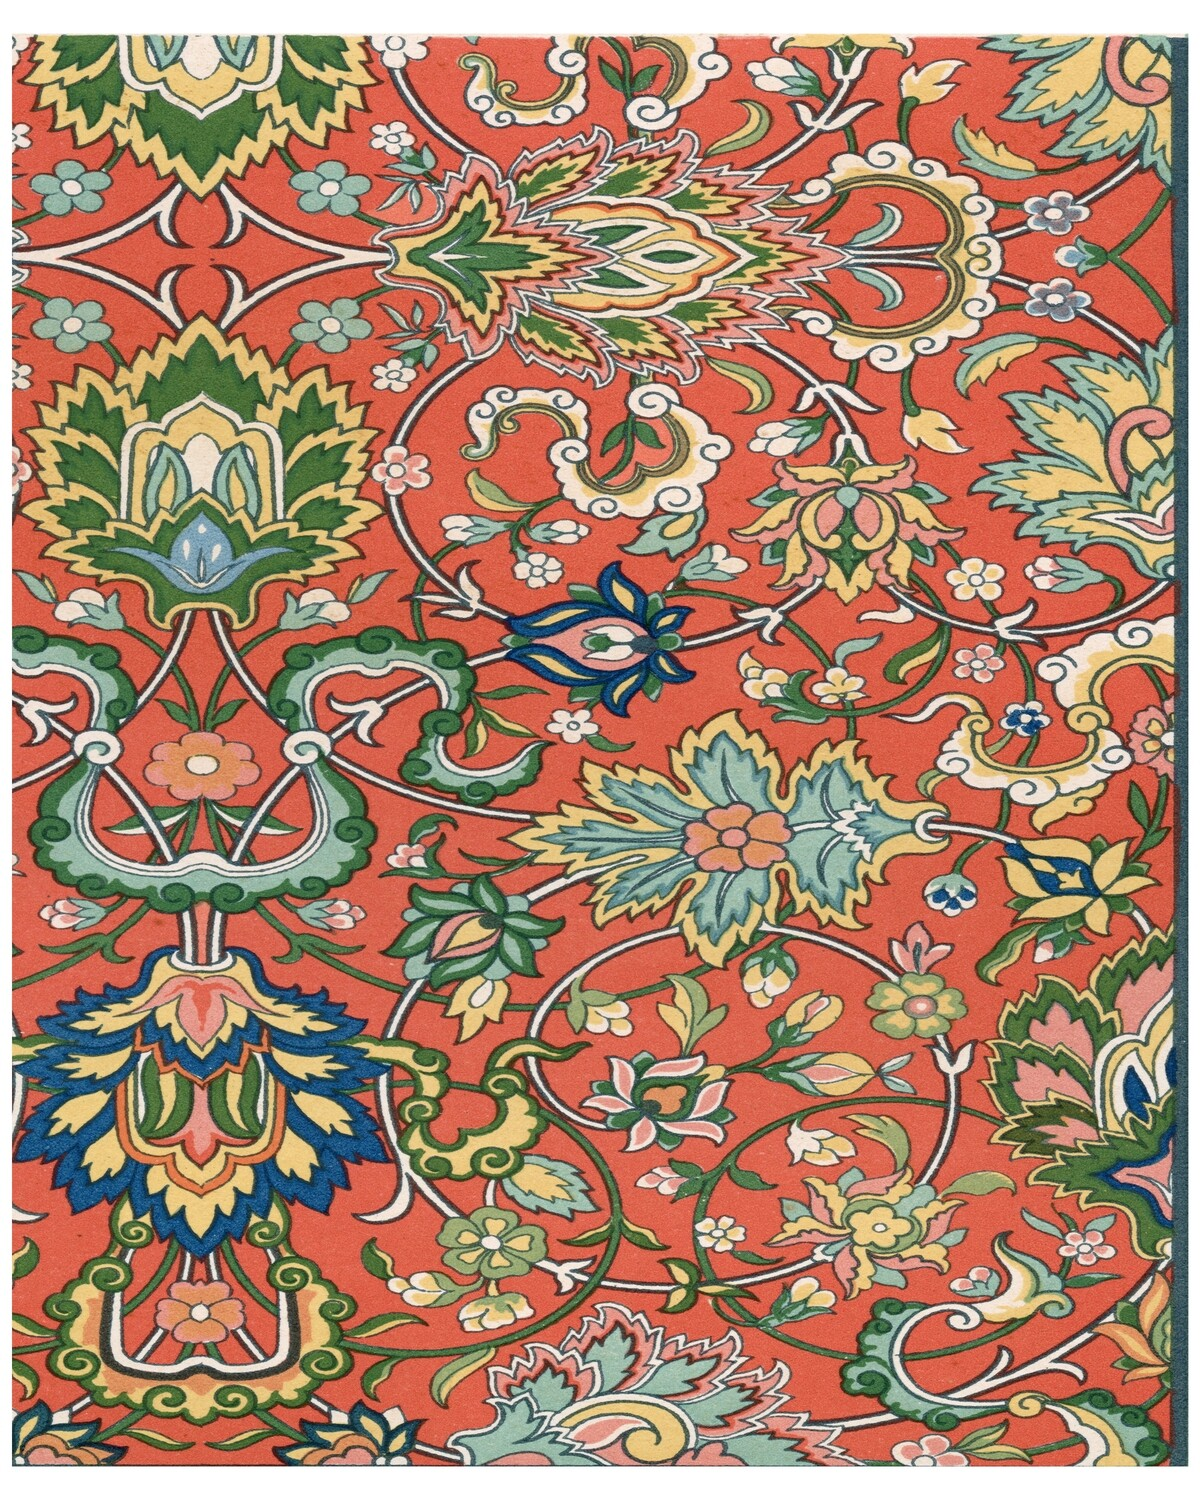 Persians Patterns 1 collage pak ***PRINTED VERSION*** 7 pages